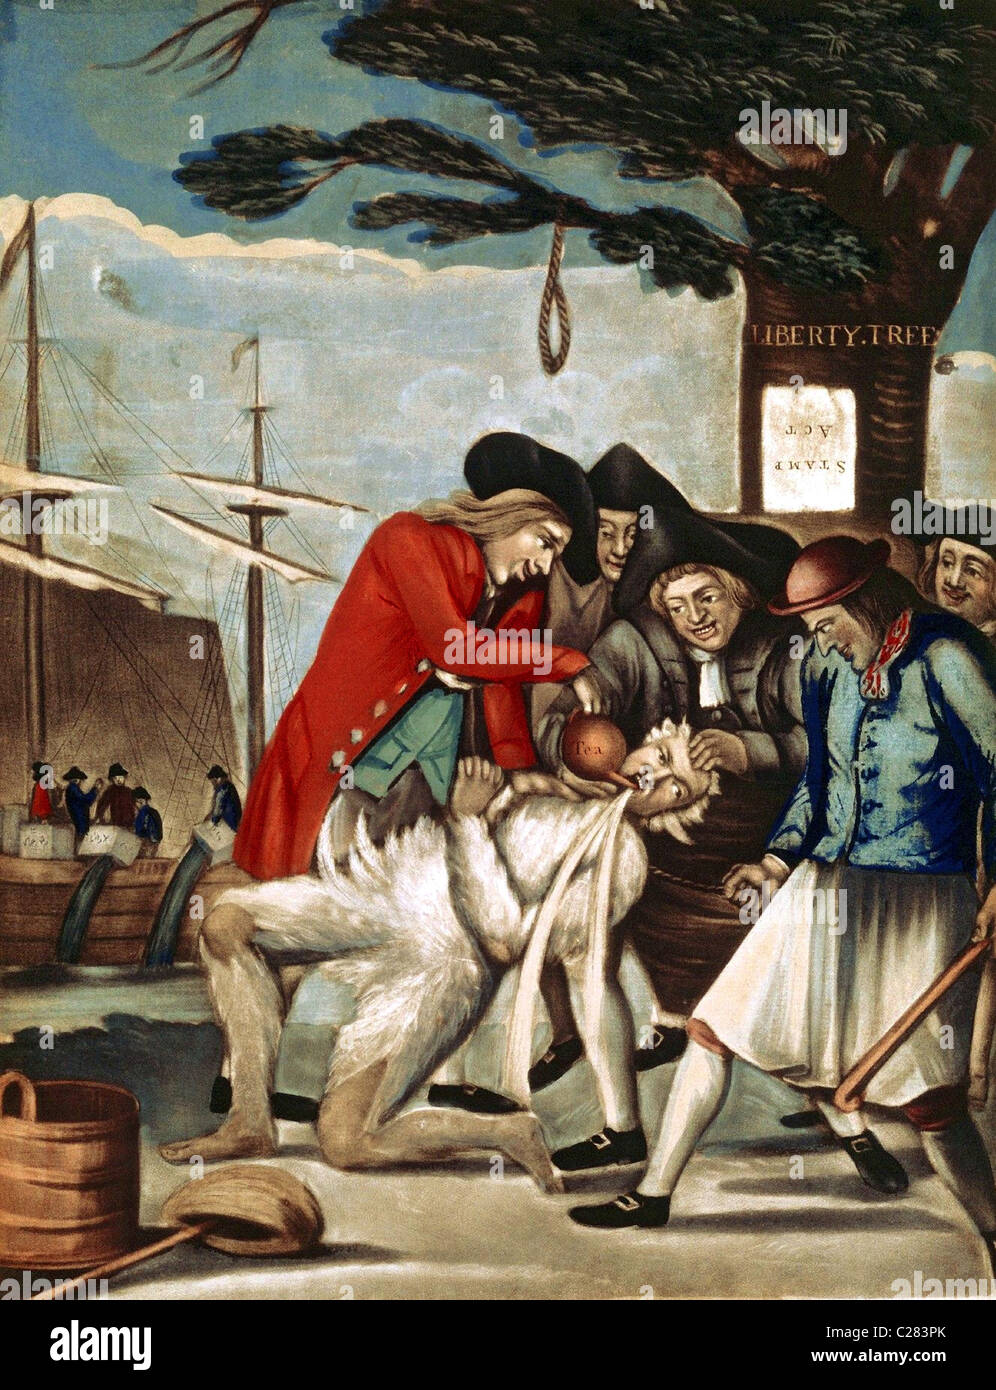 The Bostonians Paying the Excise Man. The Sons of Liberty tarring and feathering a tax collector underneath the Liberty Tree Stock Photo